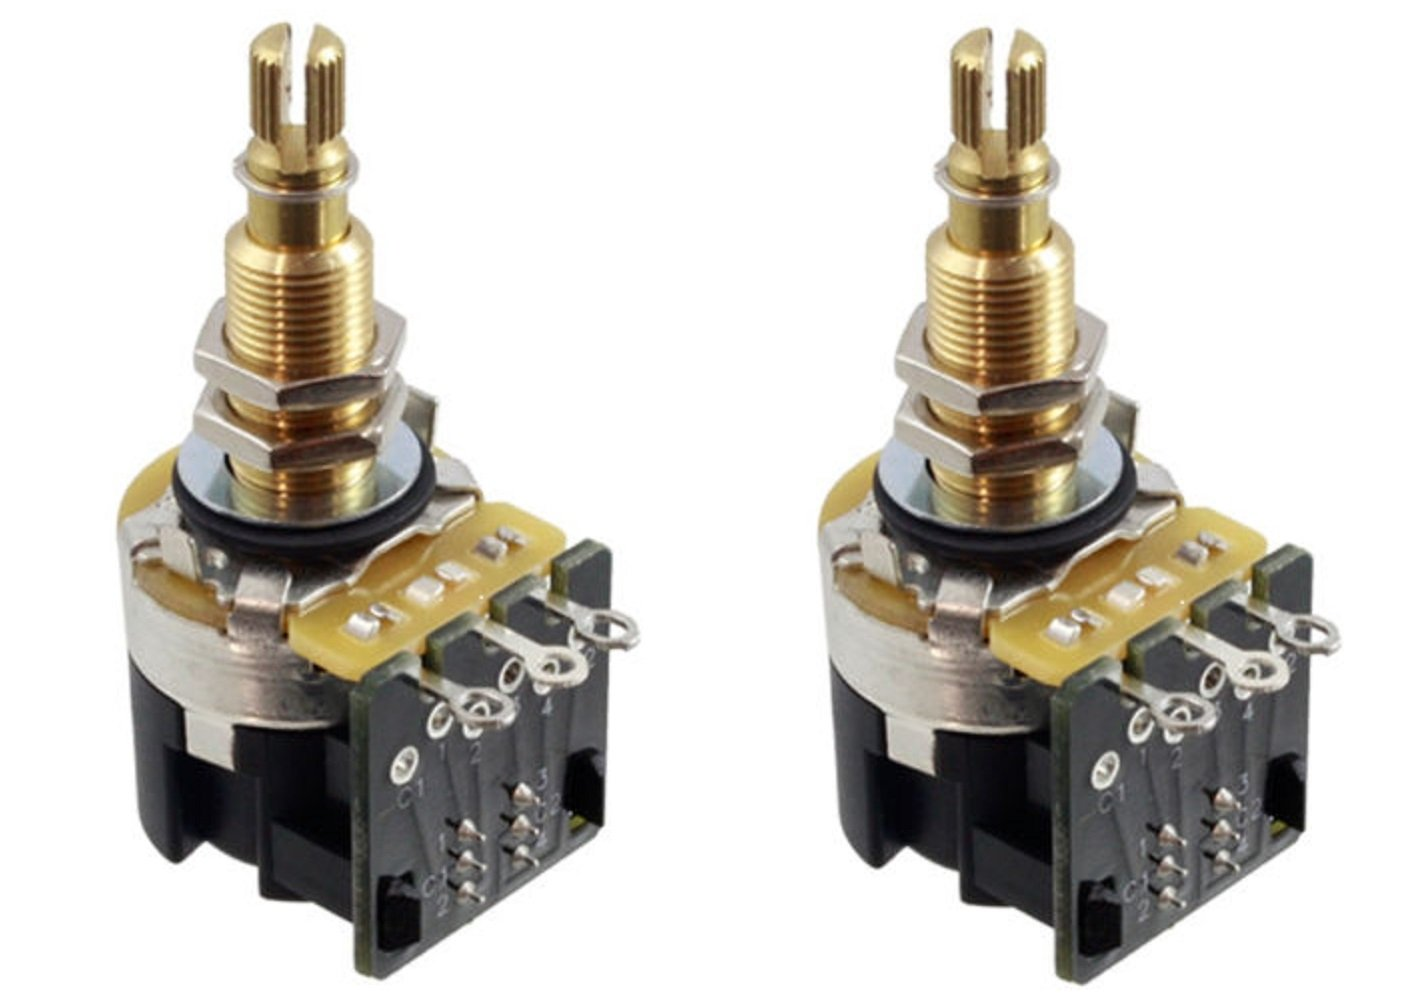 Cts 500k Push Pull Long Shaft Audio Taper Potentiometers Pot Wiring Diagram Pair 2x Musical Instruments